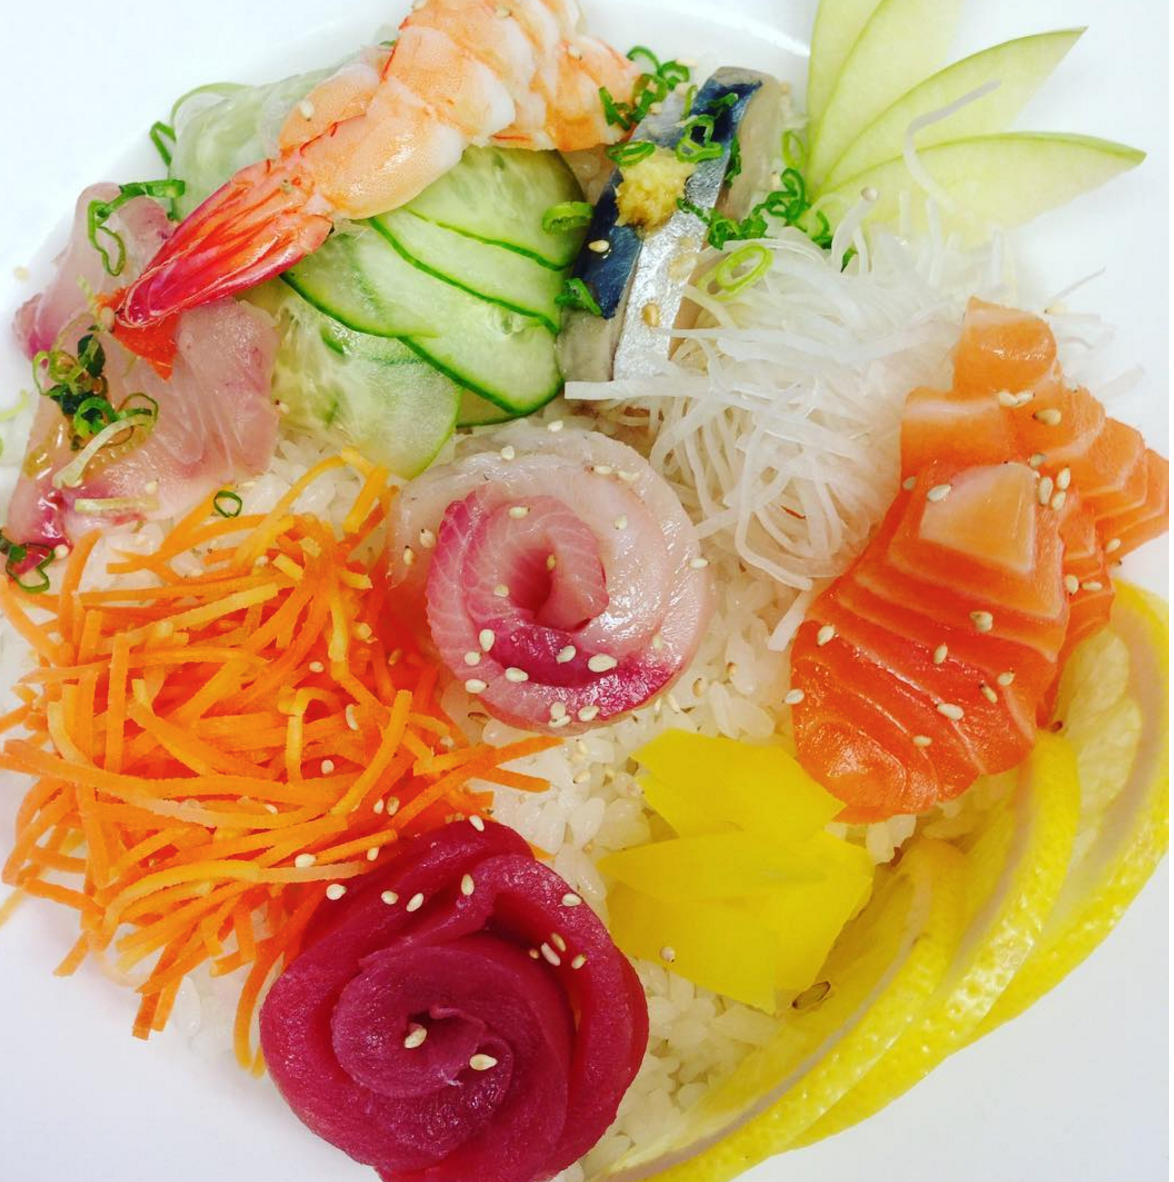 Chirashi bowl Photo By: Olivia Van Wormer